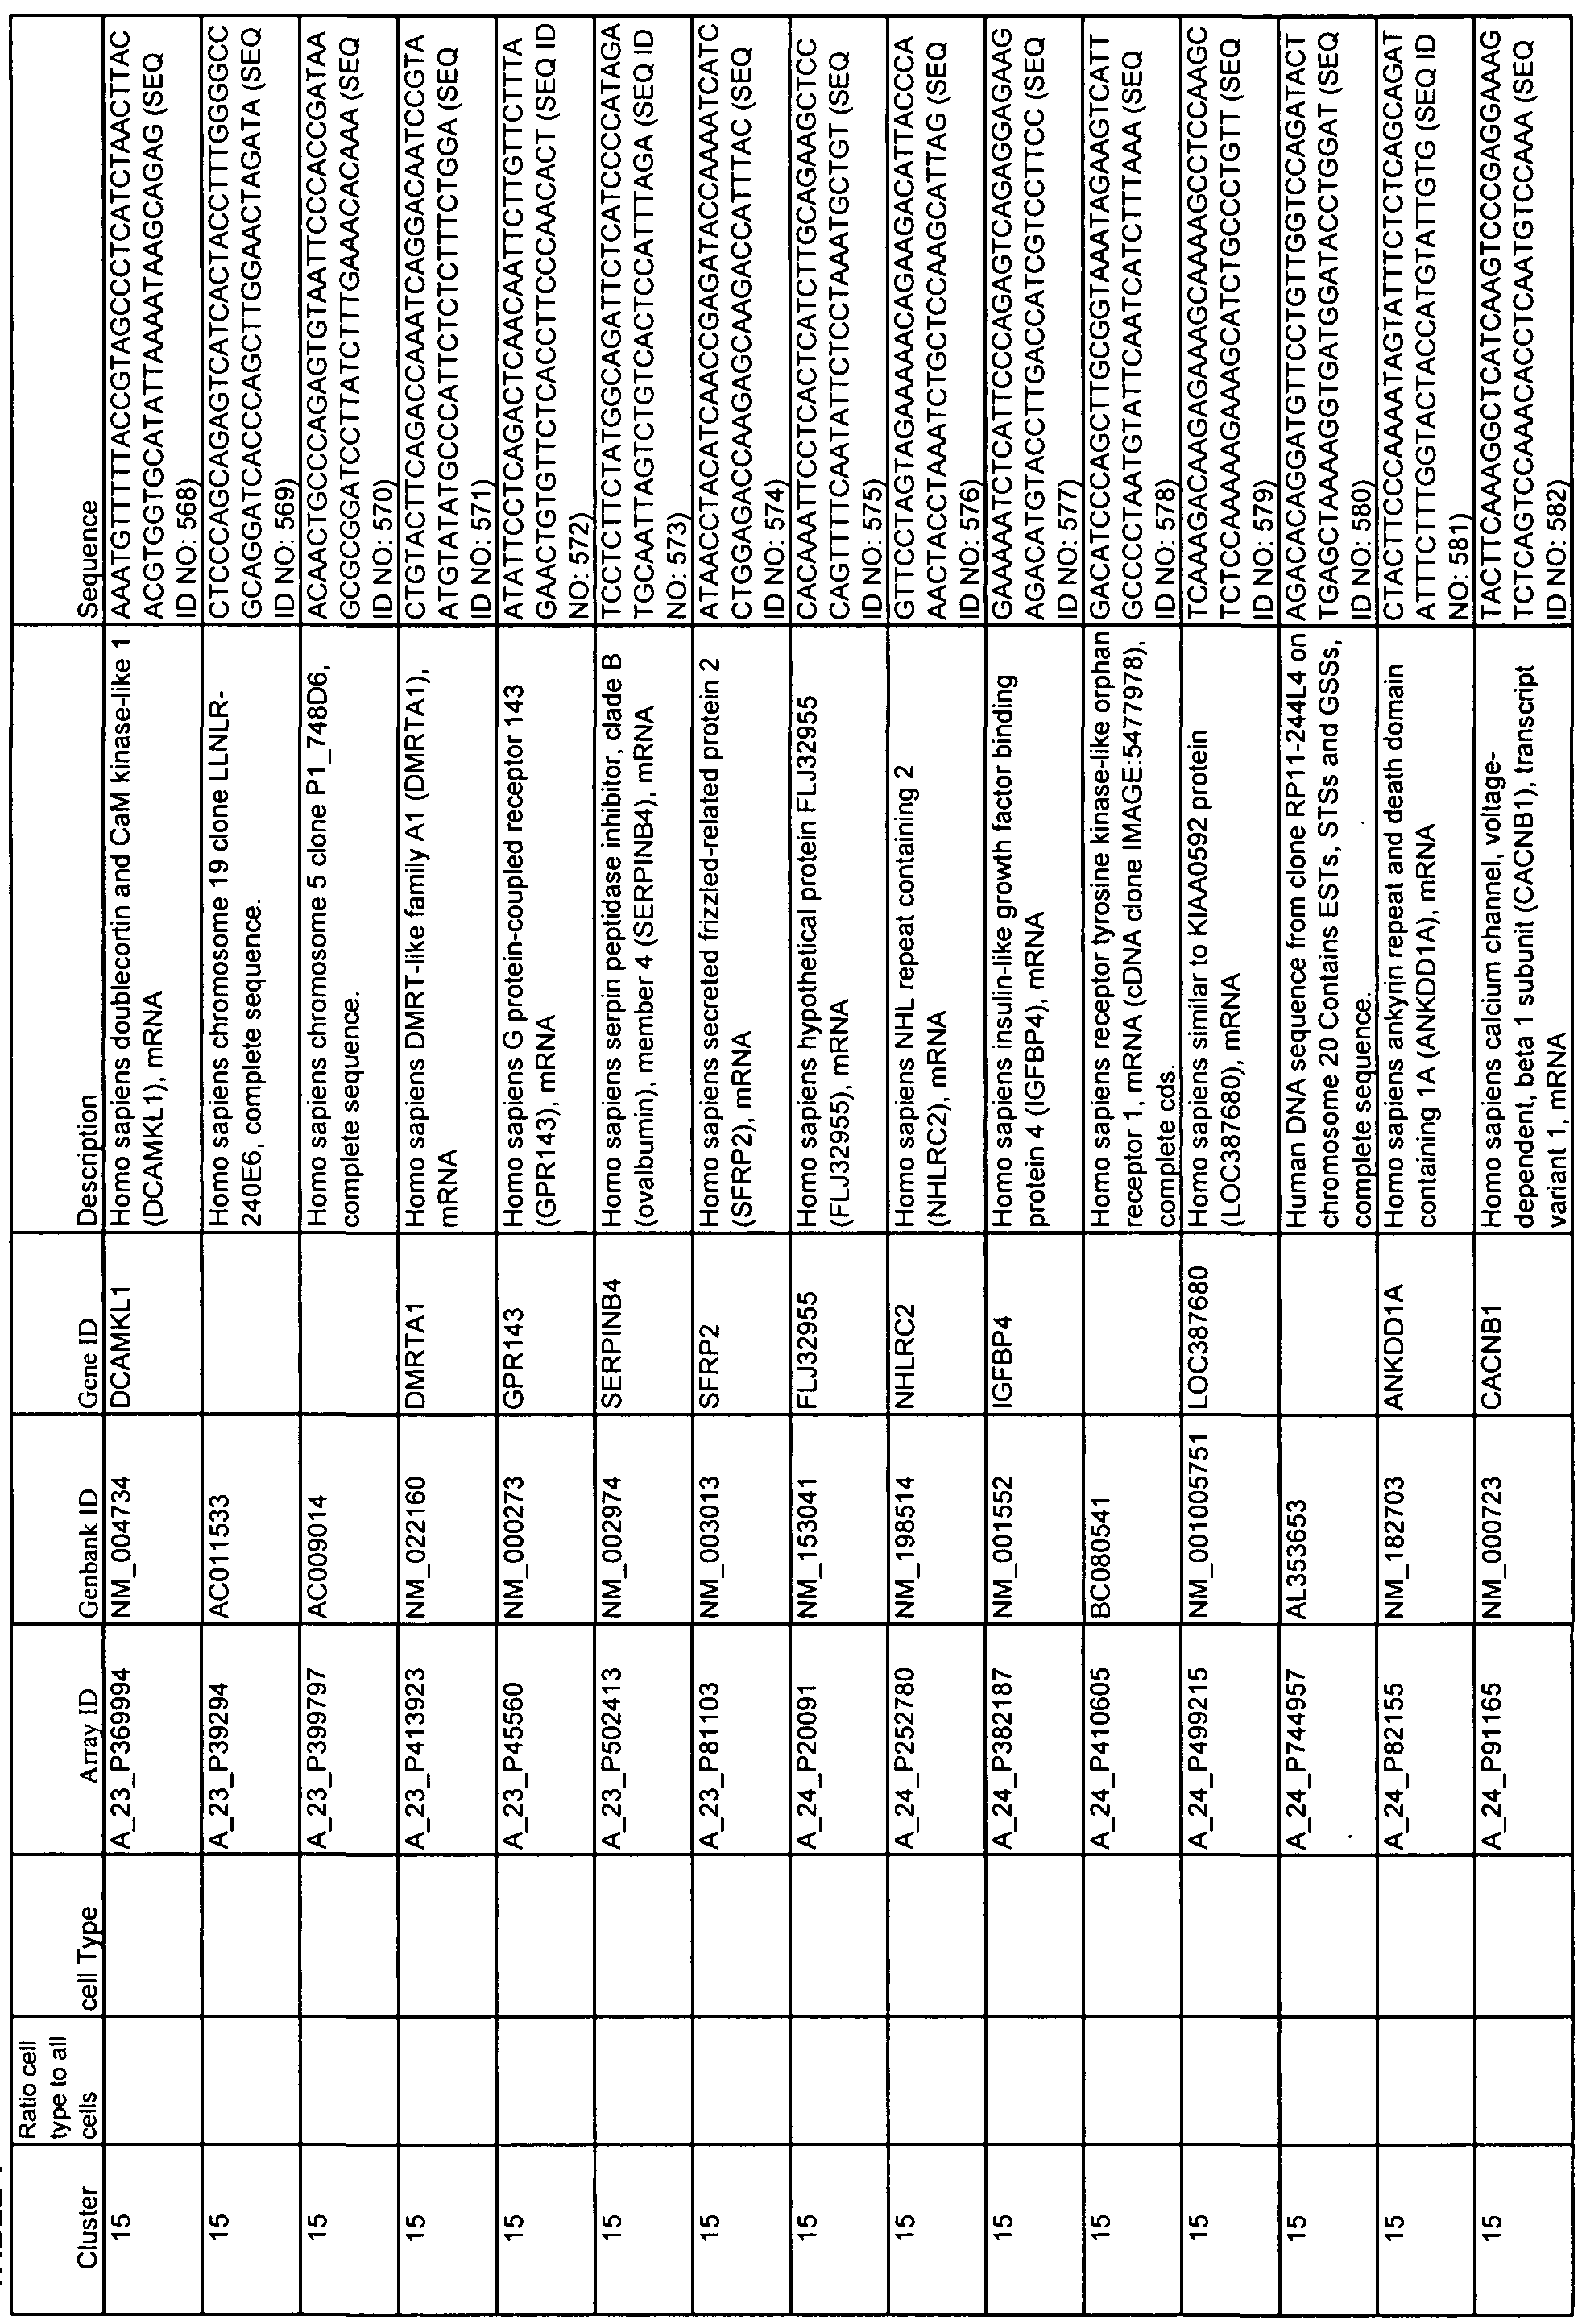 WO A2 Methods for diagnosing and monitoring the status of